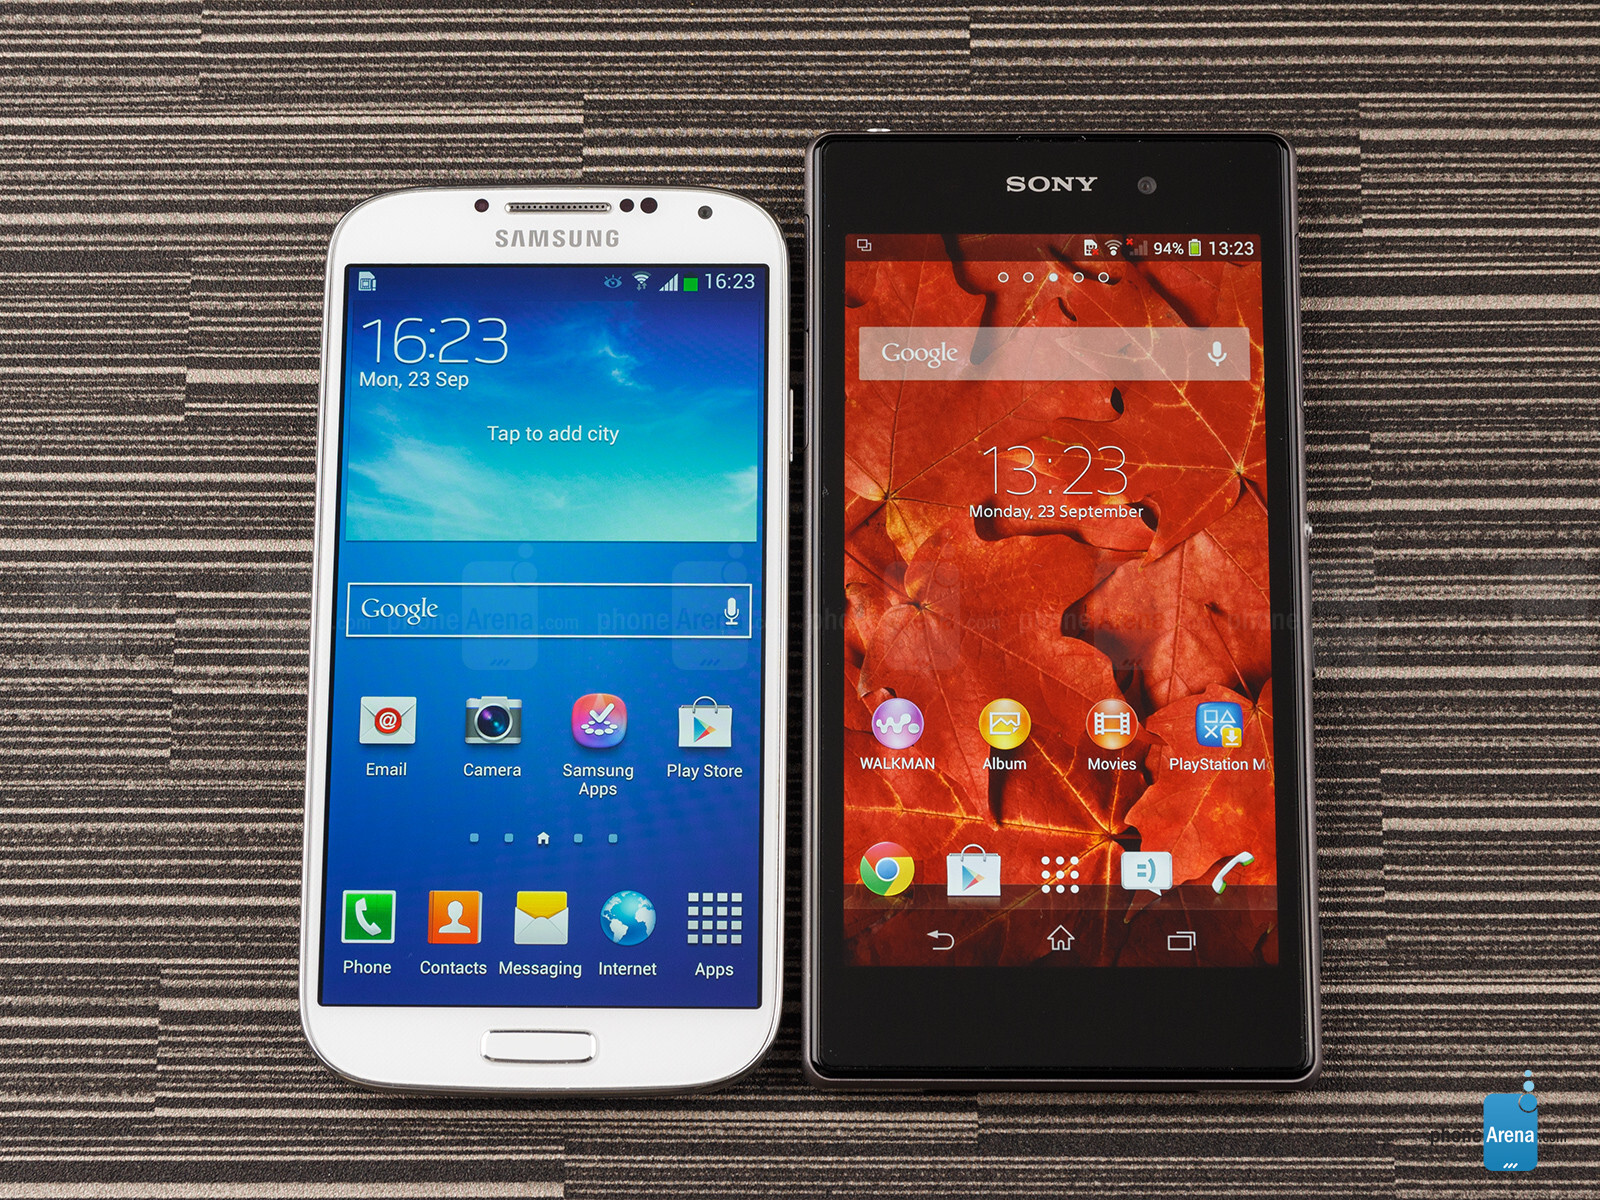 http://i-cdn.phonearena.com/images/reviews/140921-image/Sony-Xperia-Z1-vs-Samsung-Galaxy-S4-01.jpg